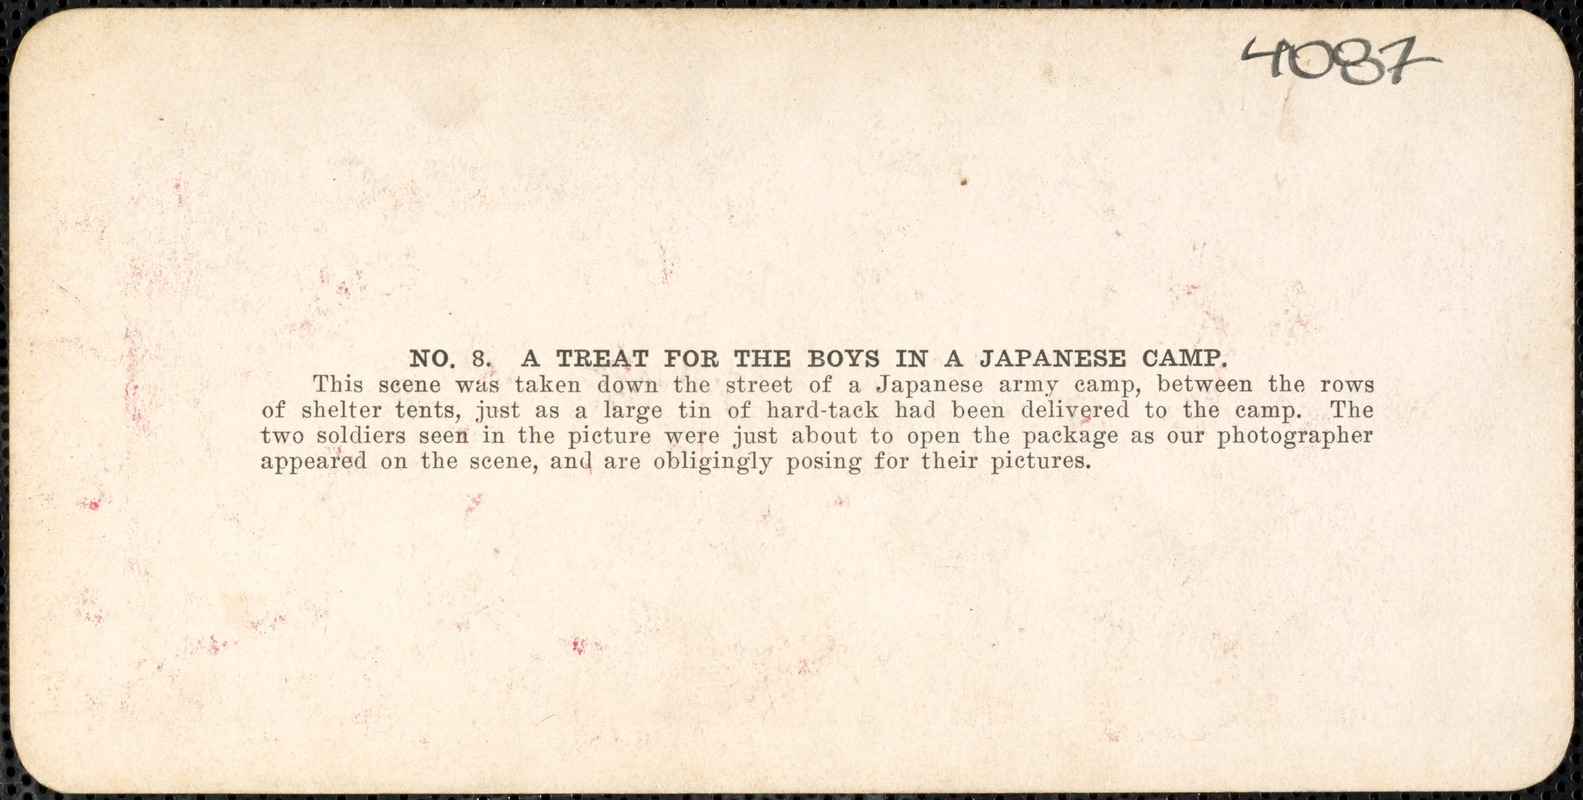 A treat for the boys in the Japanese camp